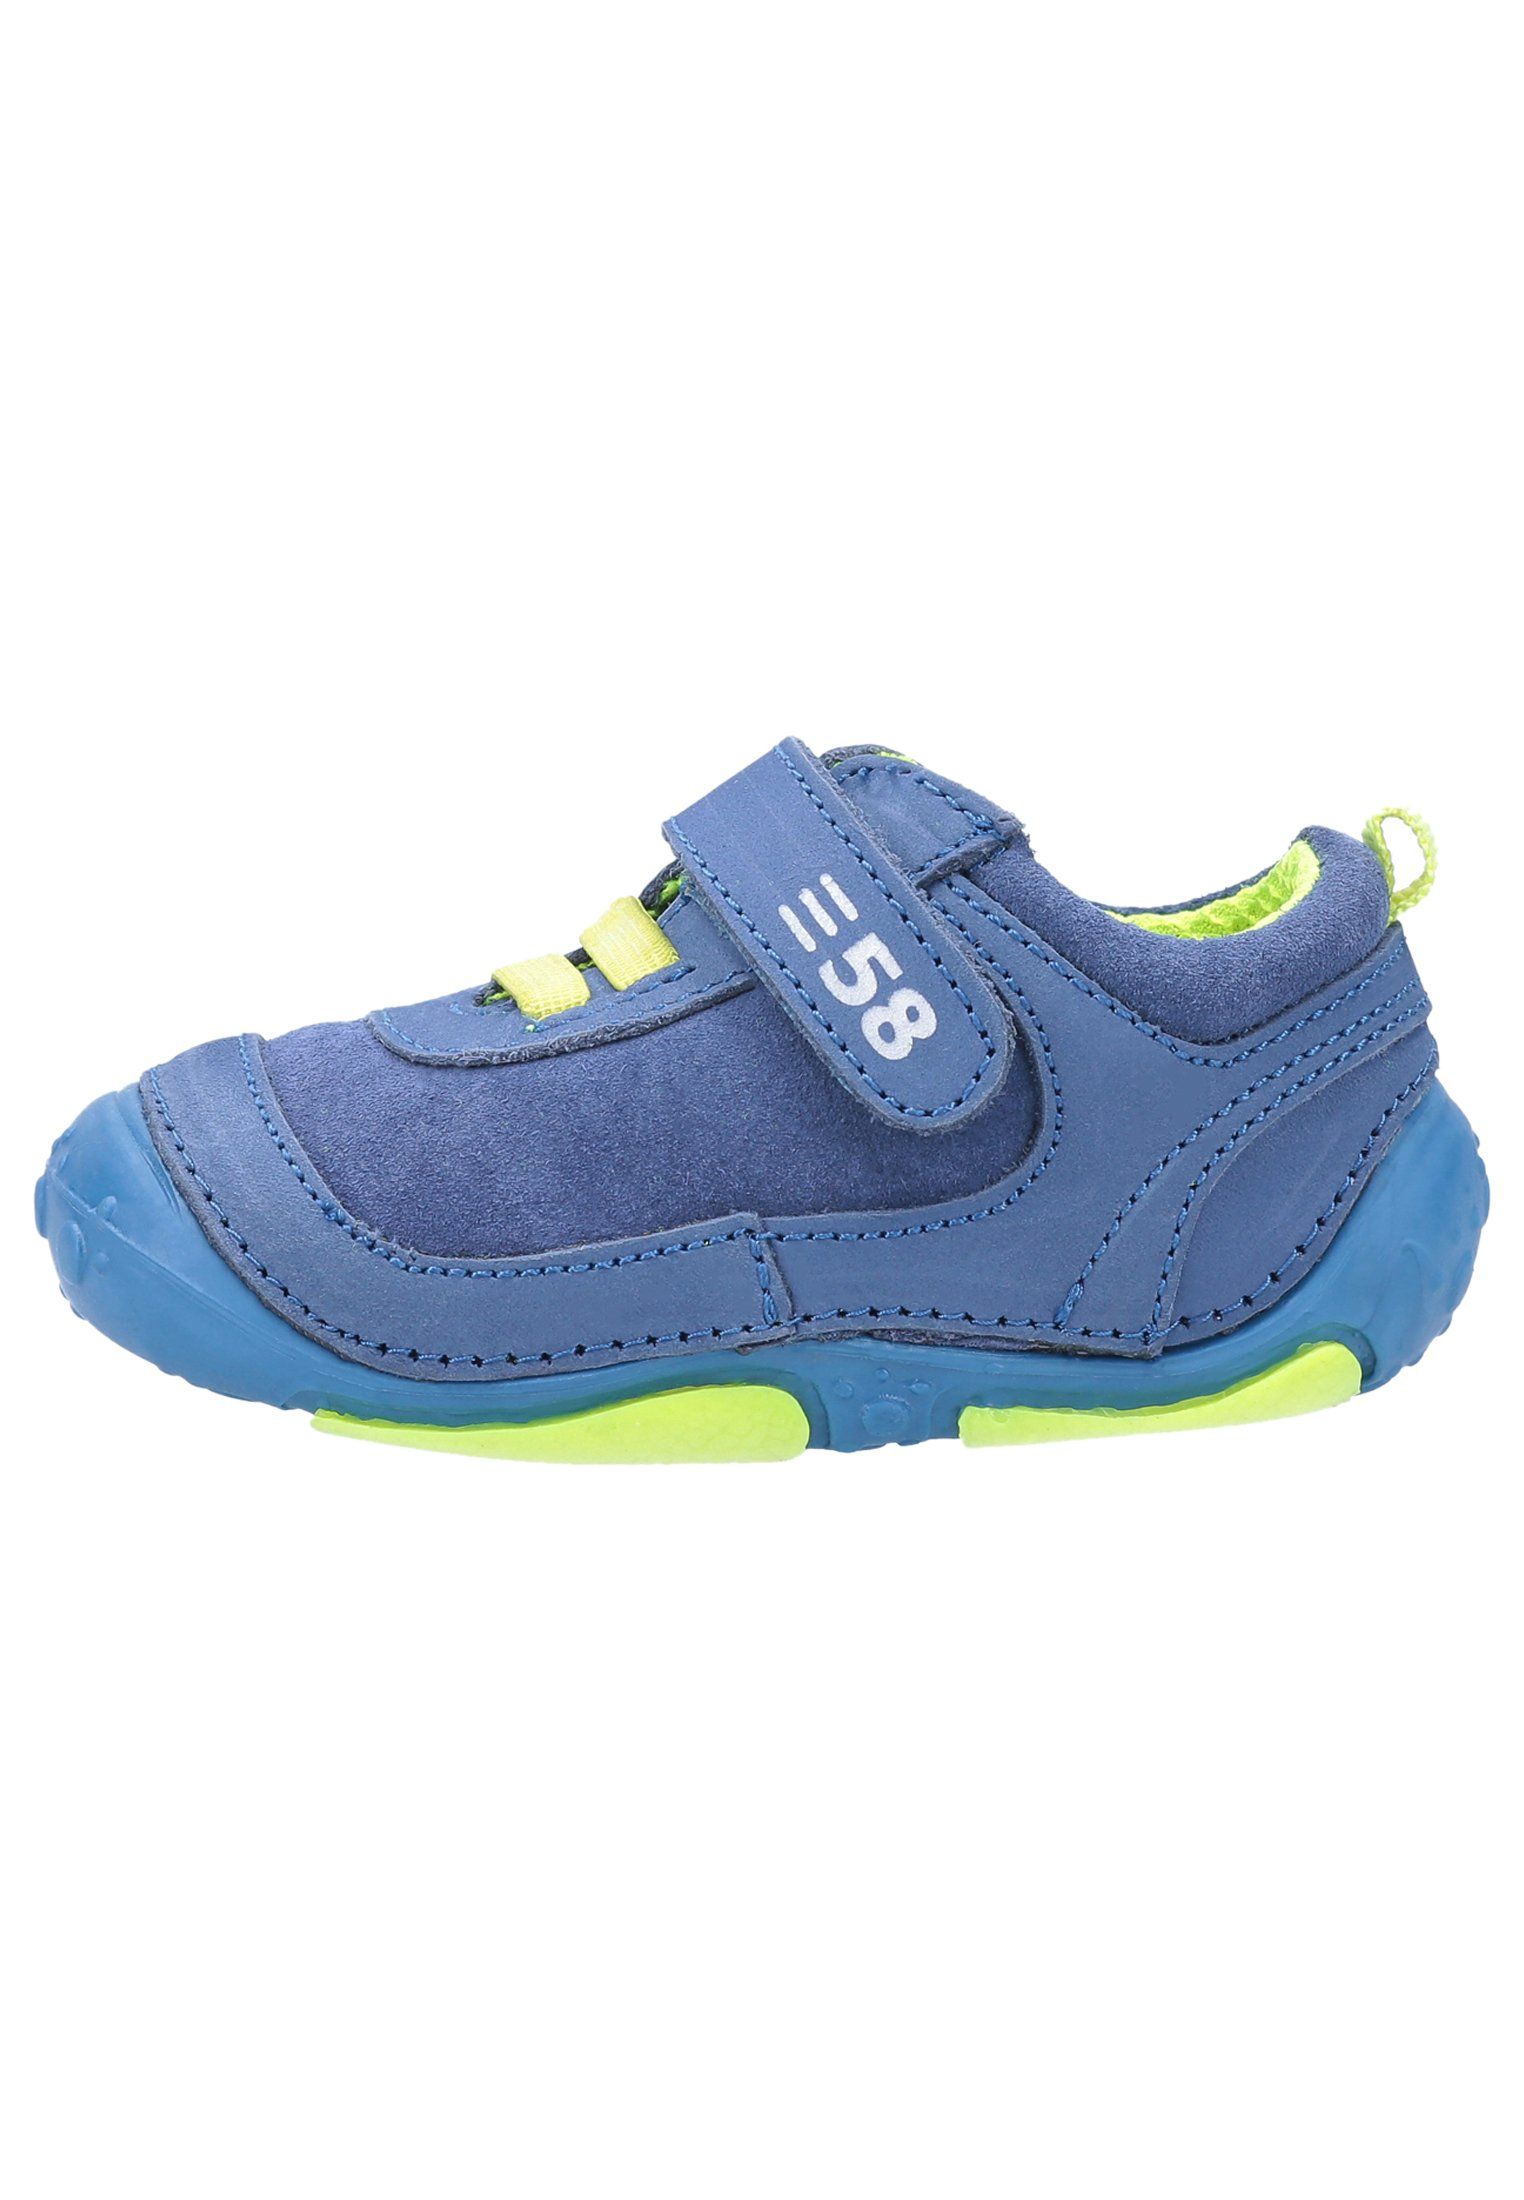 Limited Cheapest Hush Puppies MIT KLETTVERSCH - Baby shoes - blue   kids shoes 2020 i1fhj